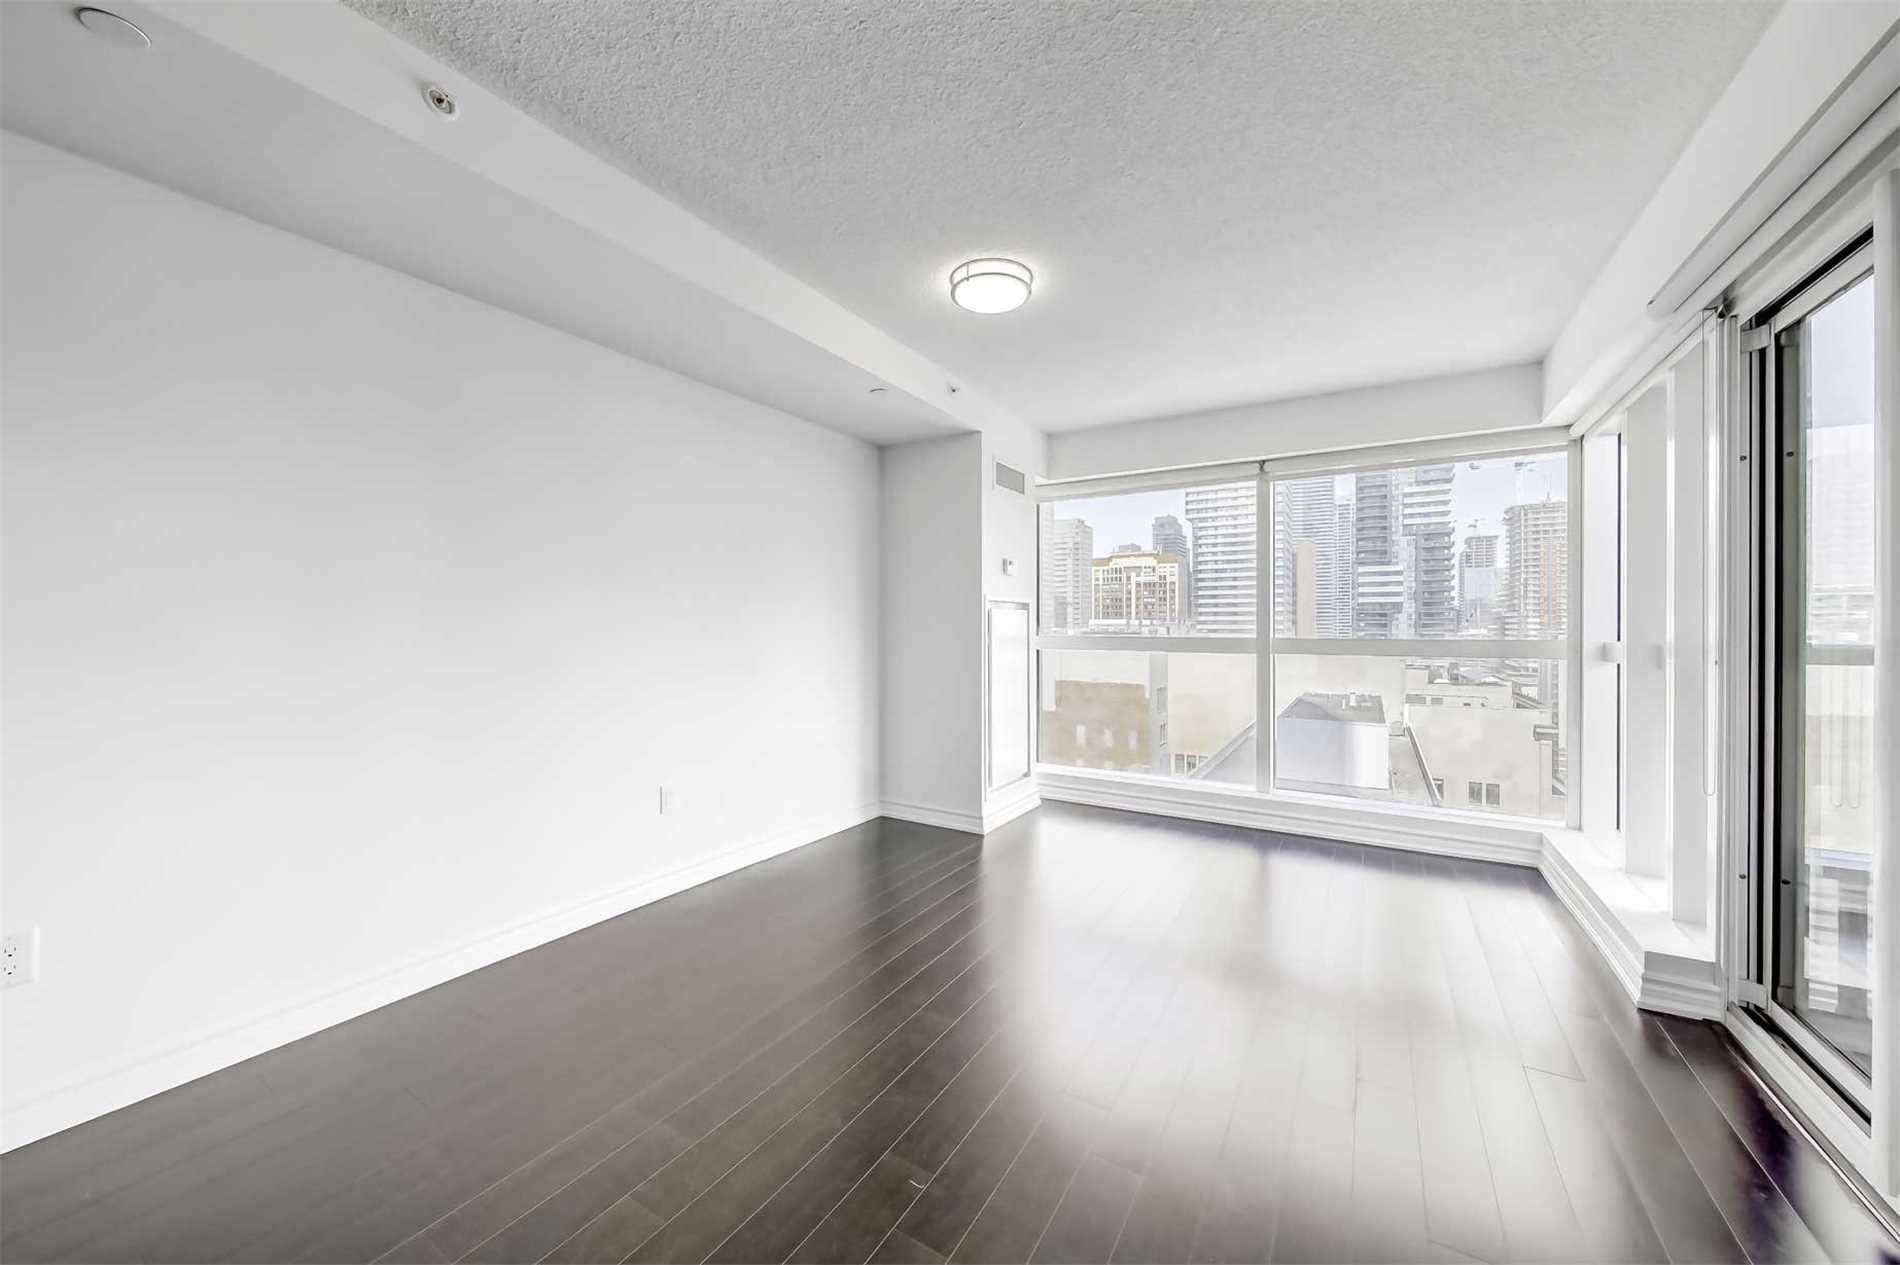 386 Yonge St, unit 1801 for rent in Toronto - image #1